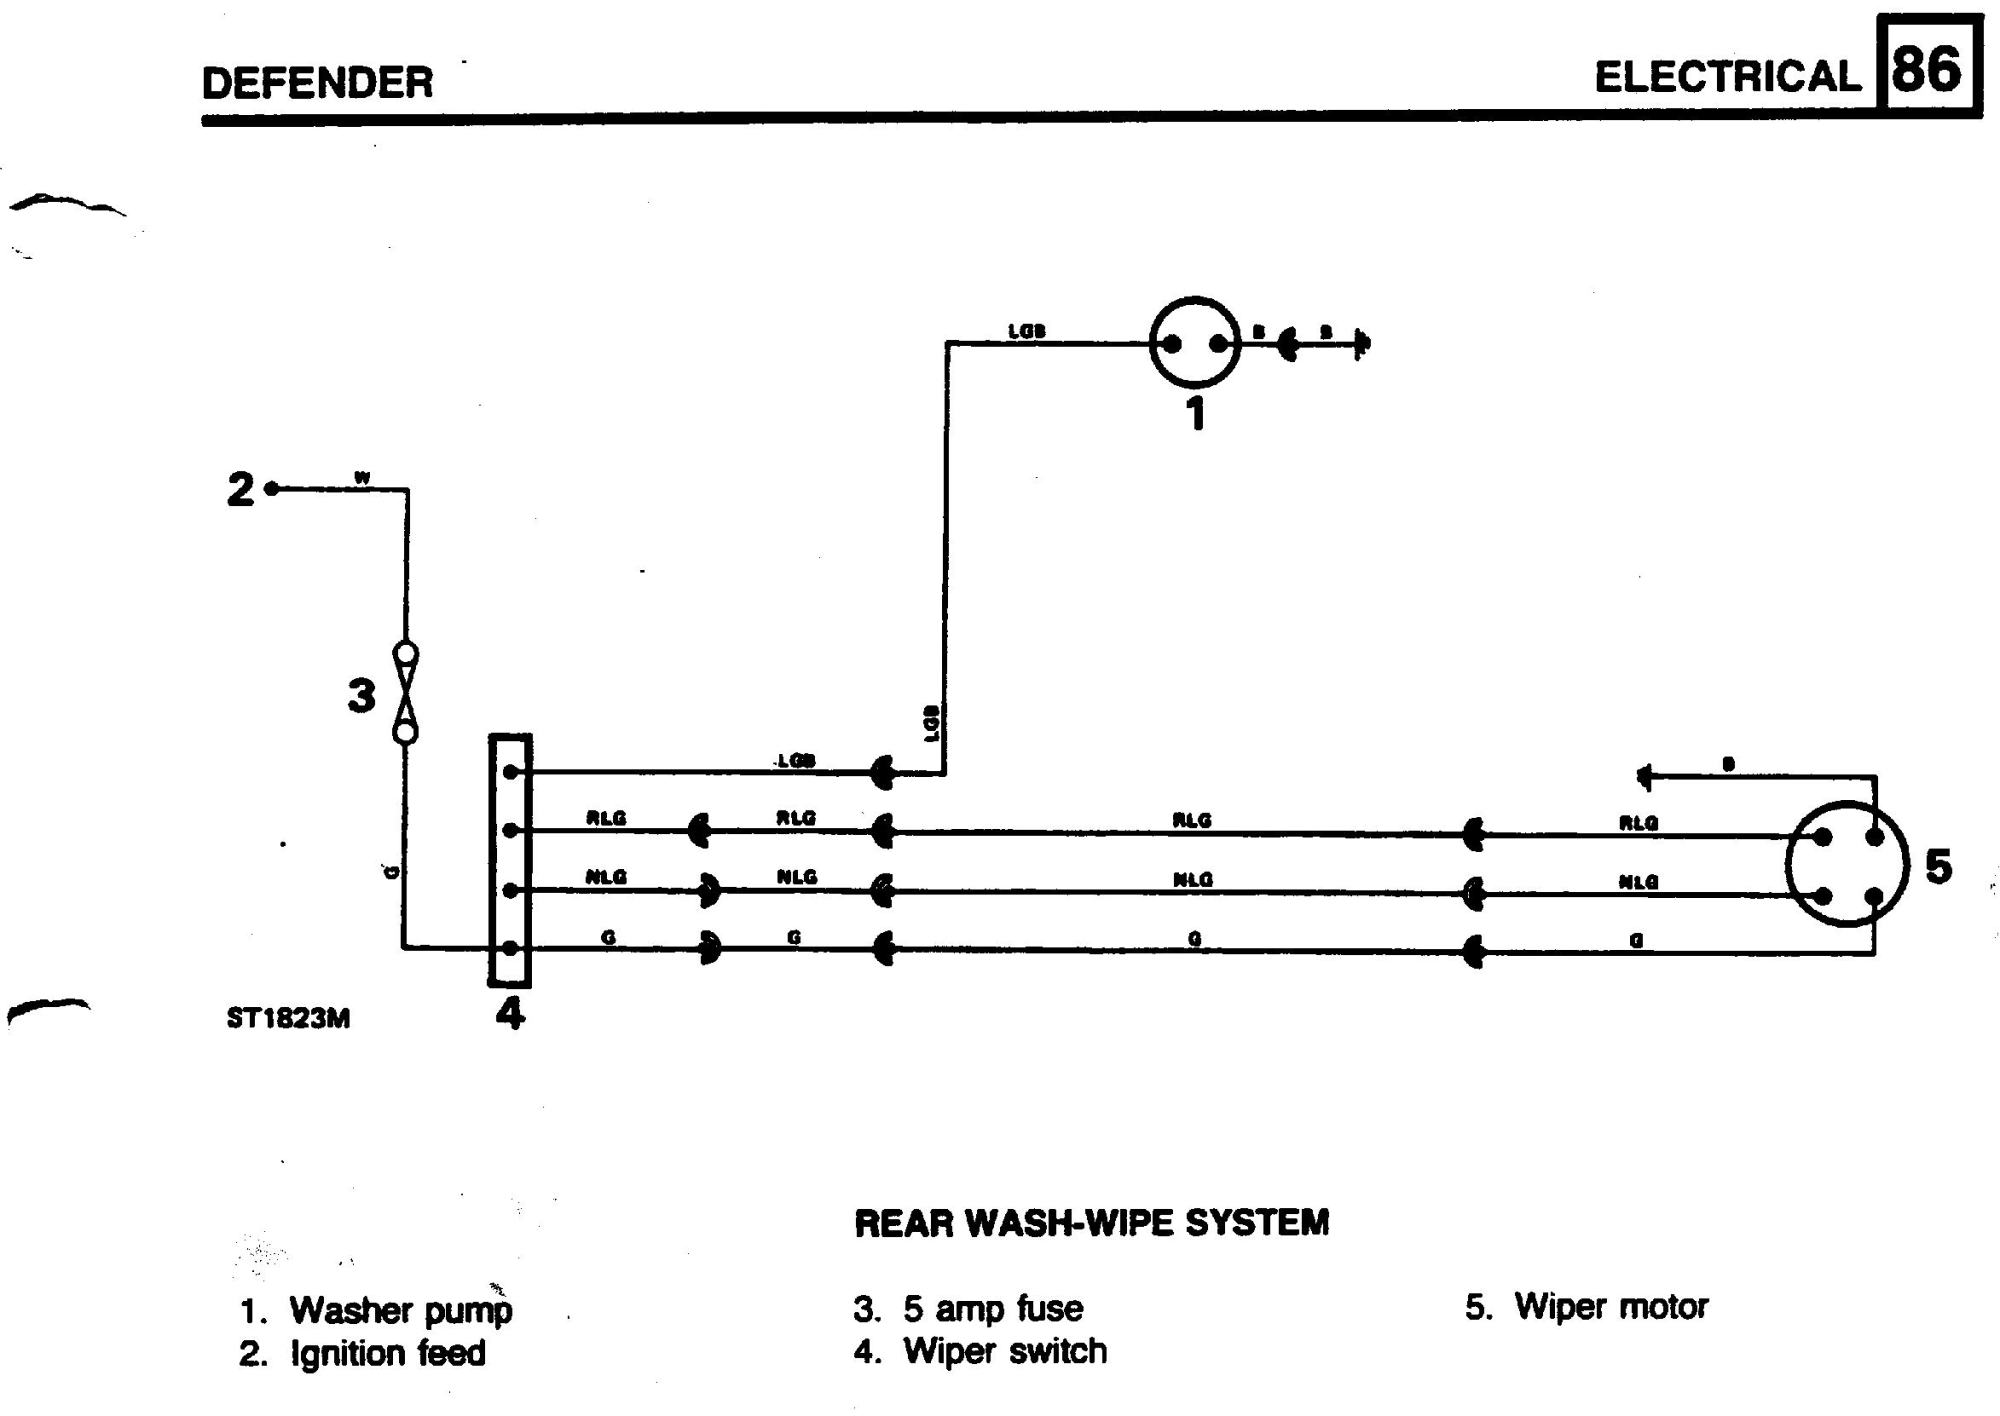 hight resolution of defender wiper motor wiring diagram schema wiring diagram mix rear wiper motor wiring defender forum lr4x4